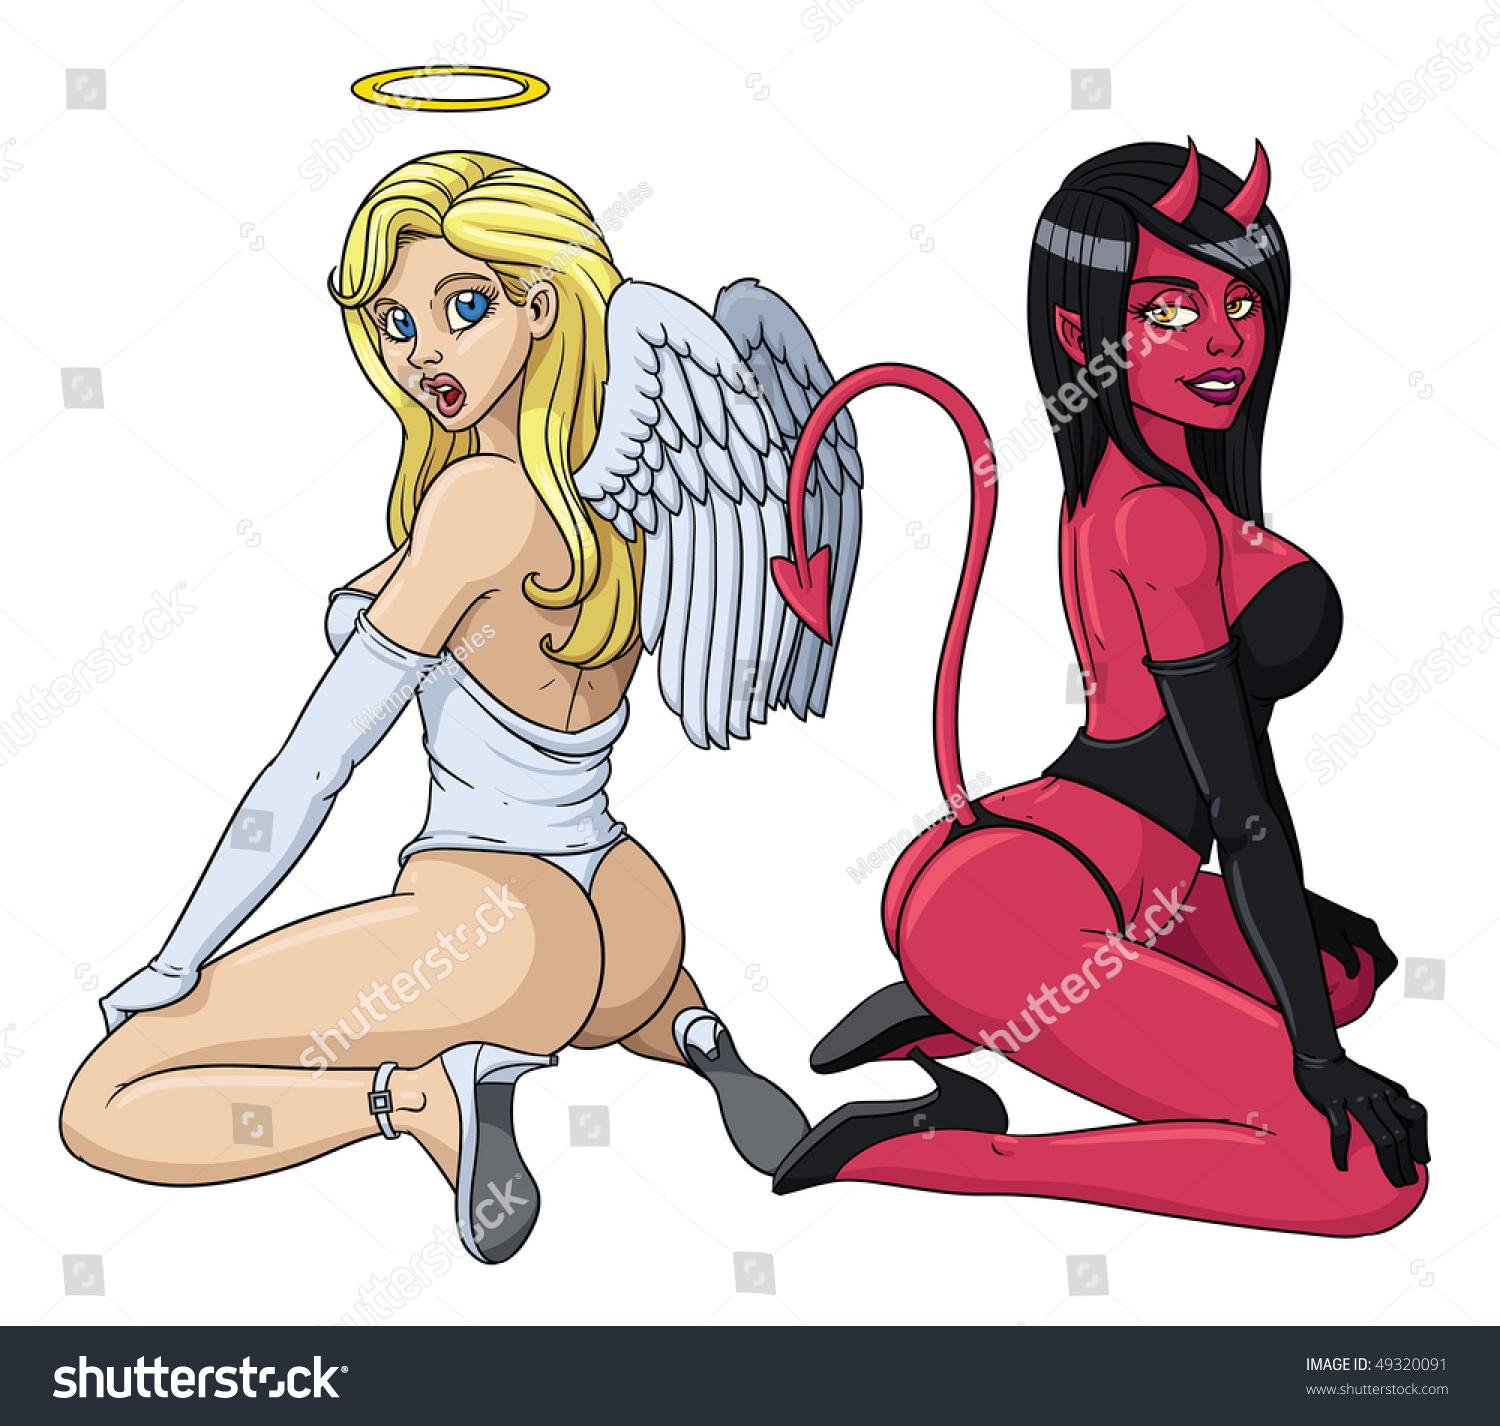 Cartoon angel naked image softcore pictures